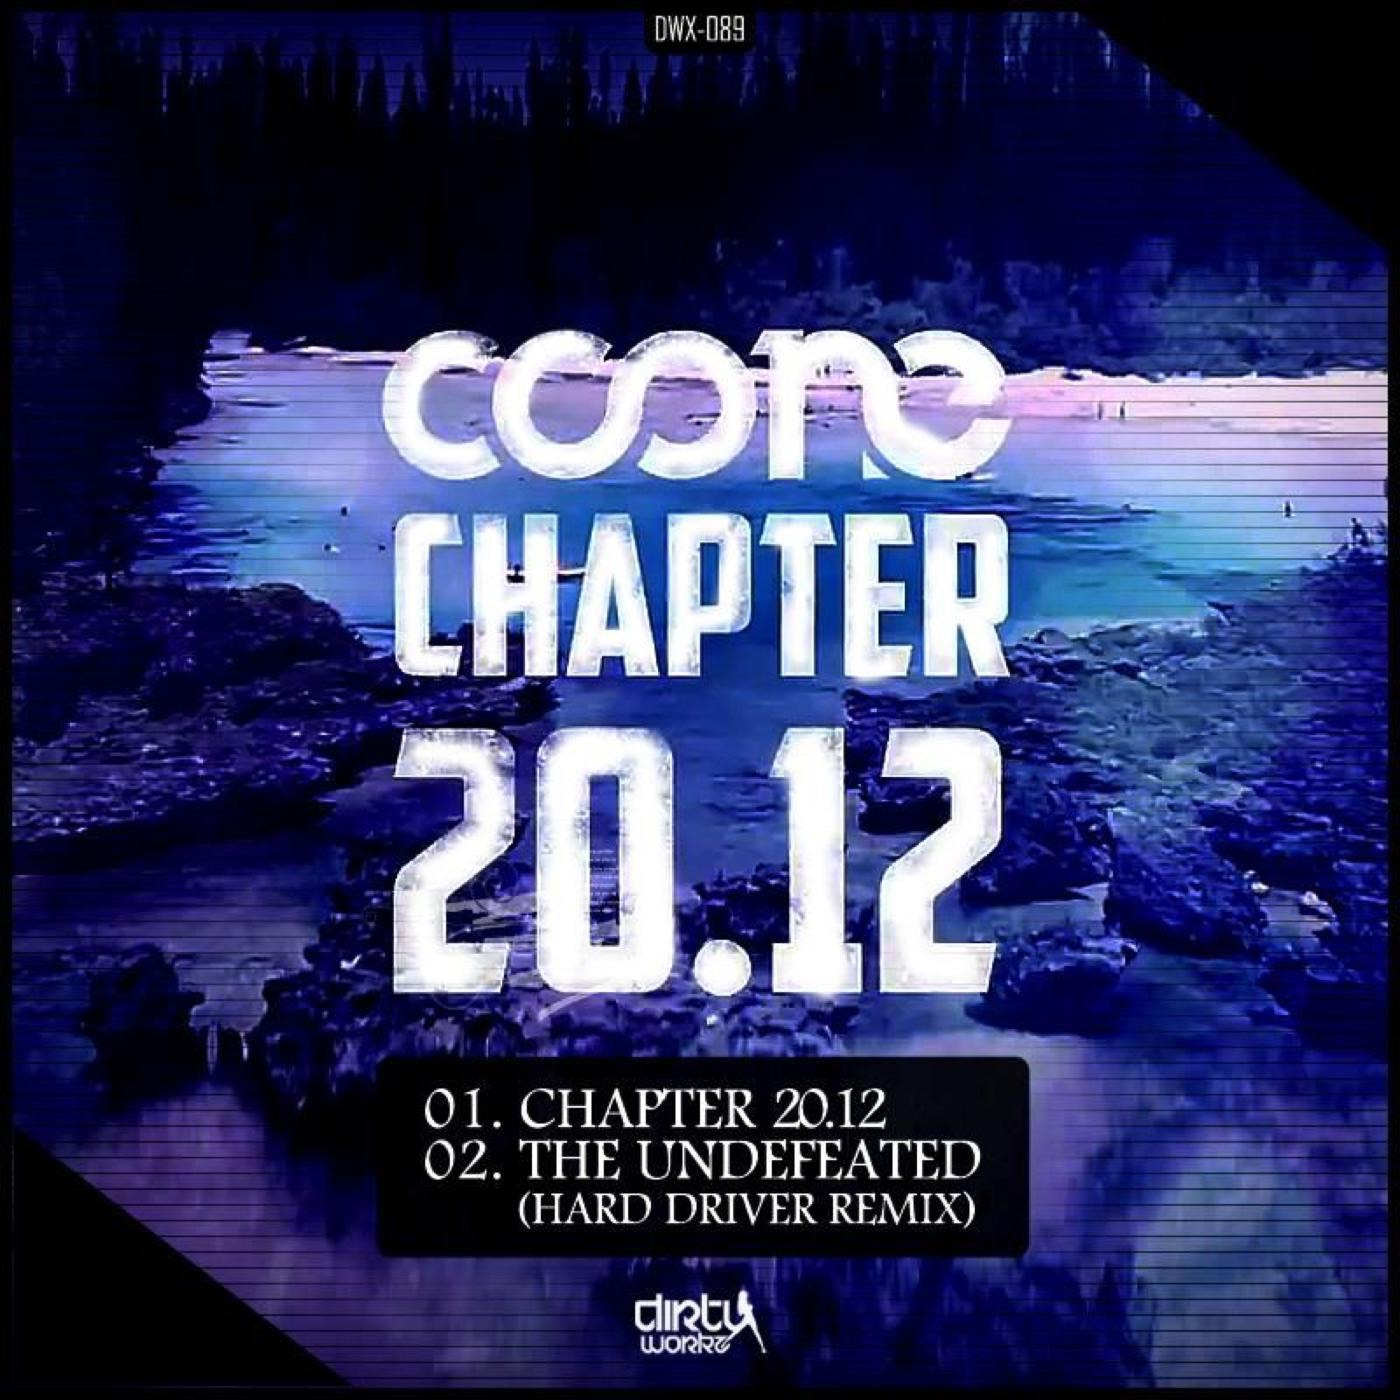 Chapter 20.12 - Single